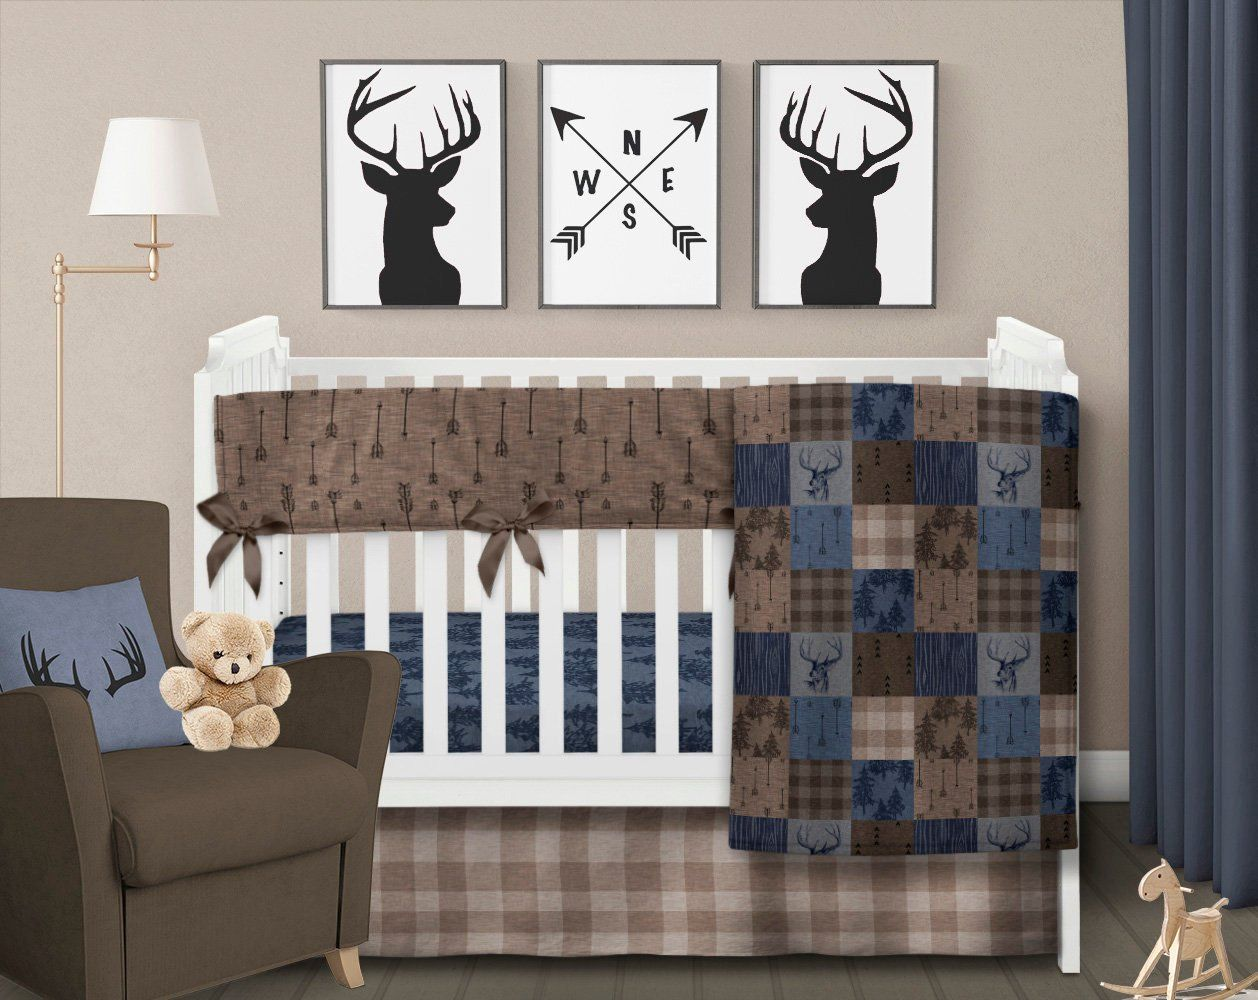 Rustic Crib Bedding Set Boy Nursery Bedding Deer Crib Bedding Plaid Baby Blanket Navy Blue Brown Tan Woo Deer Crib Bedding Boy Nursery Bedding Rustic Crib